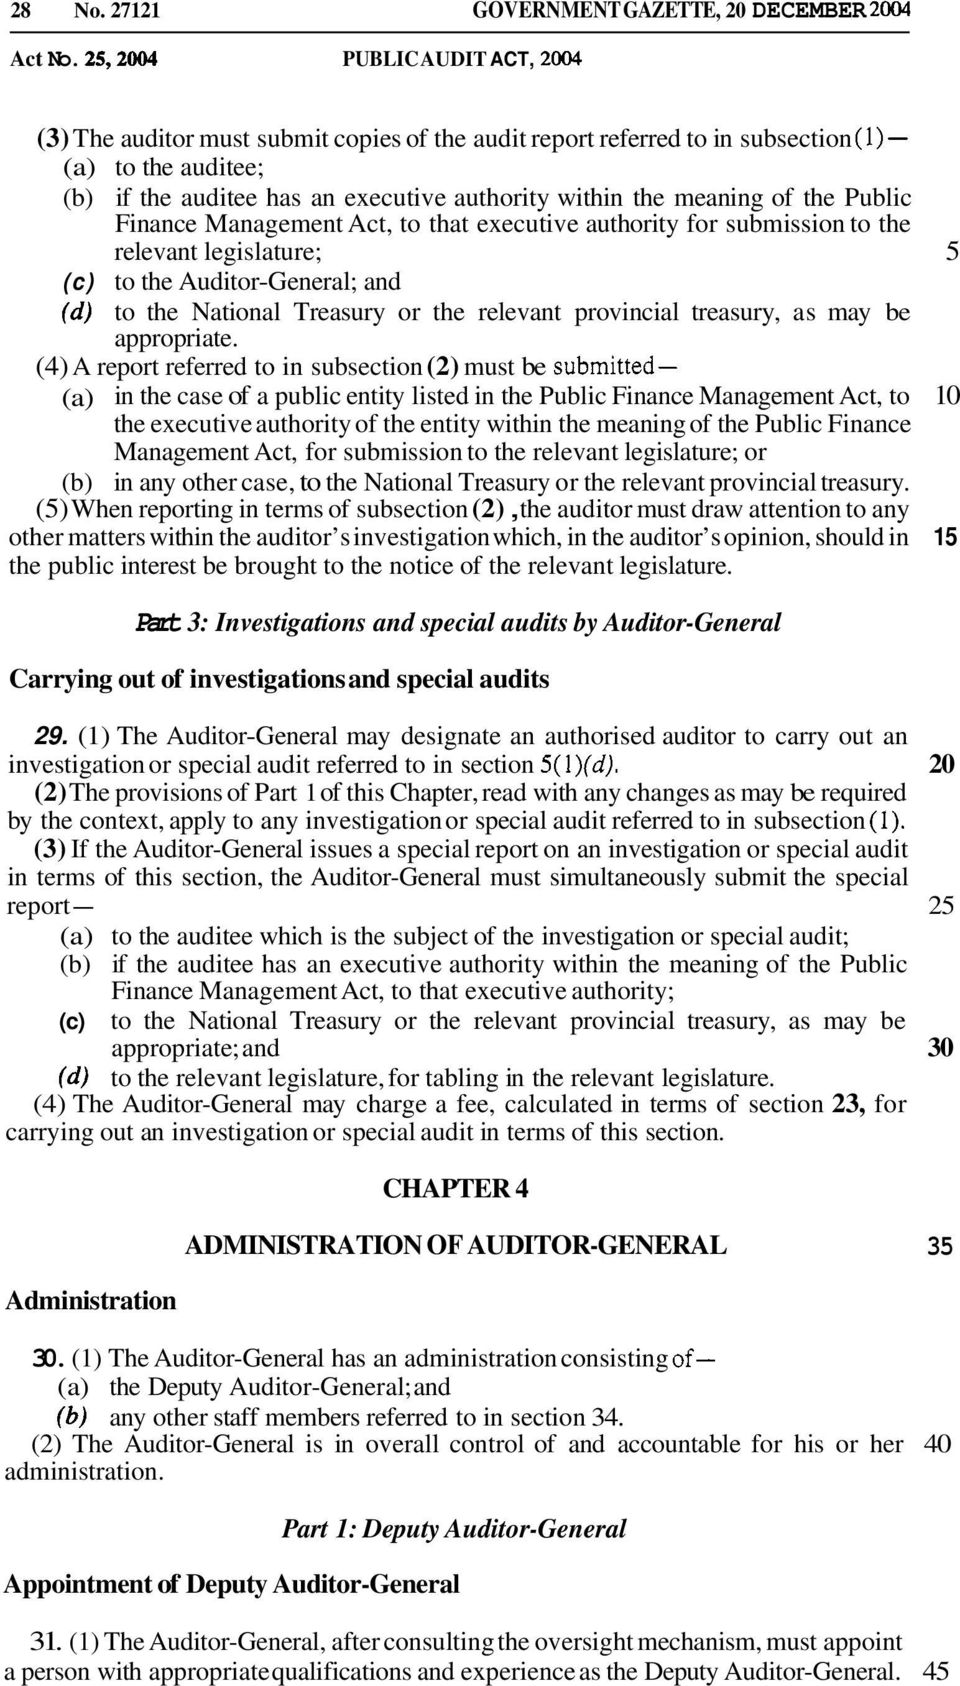 within the meaning of the Public Finance Management Act, to that executive authority for submission to the relevant legislature; 5 (c) to the Auditor-General; and (d) to the National Treasury or the